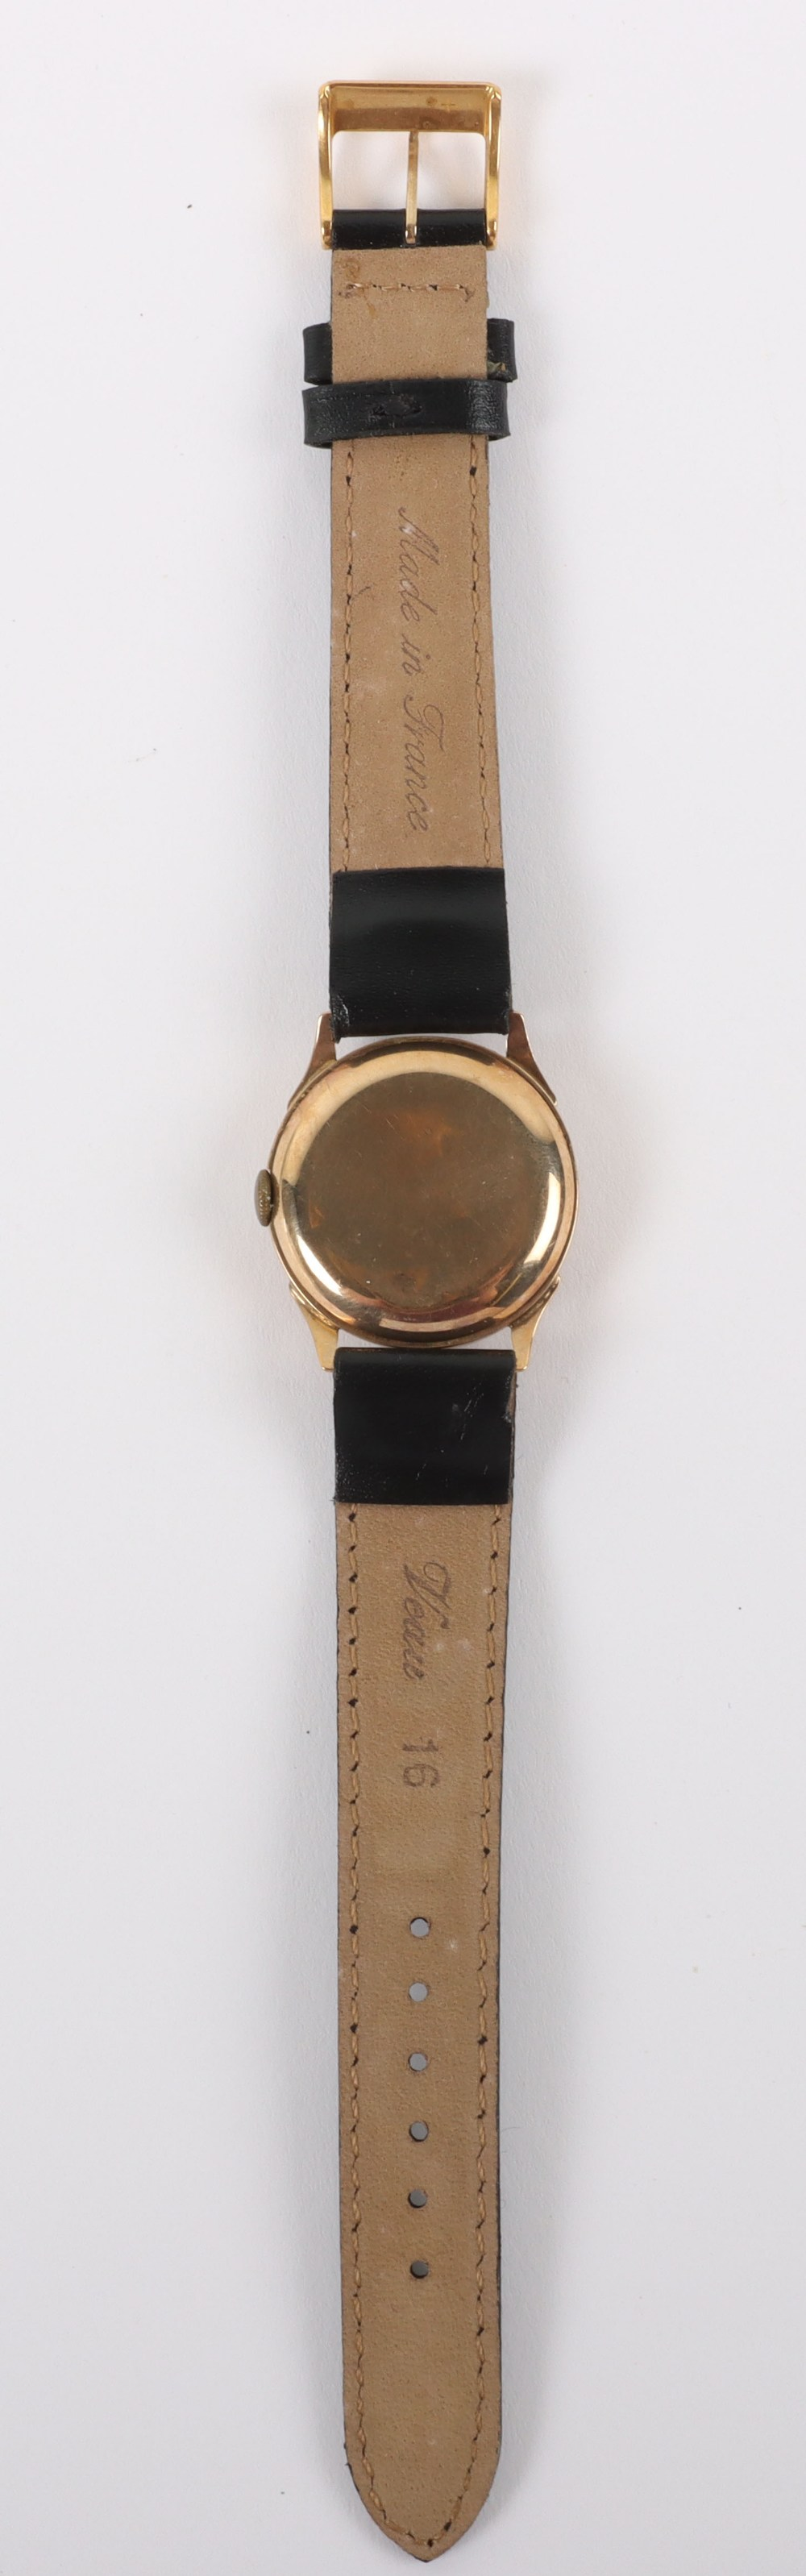 A vintage 9ct gold Swiss made wristwatch, circa 1940 - Image 4 of 7